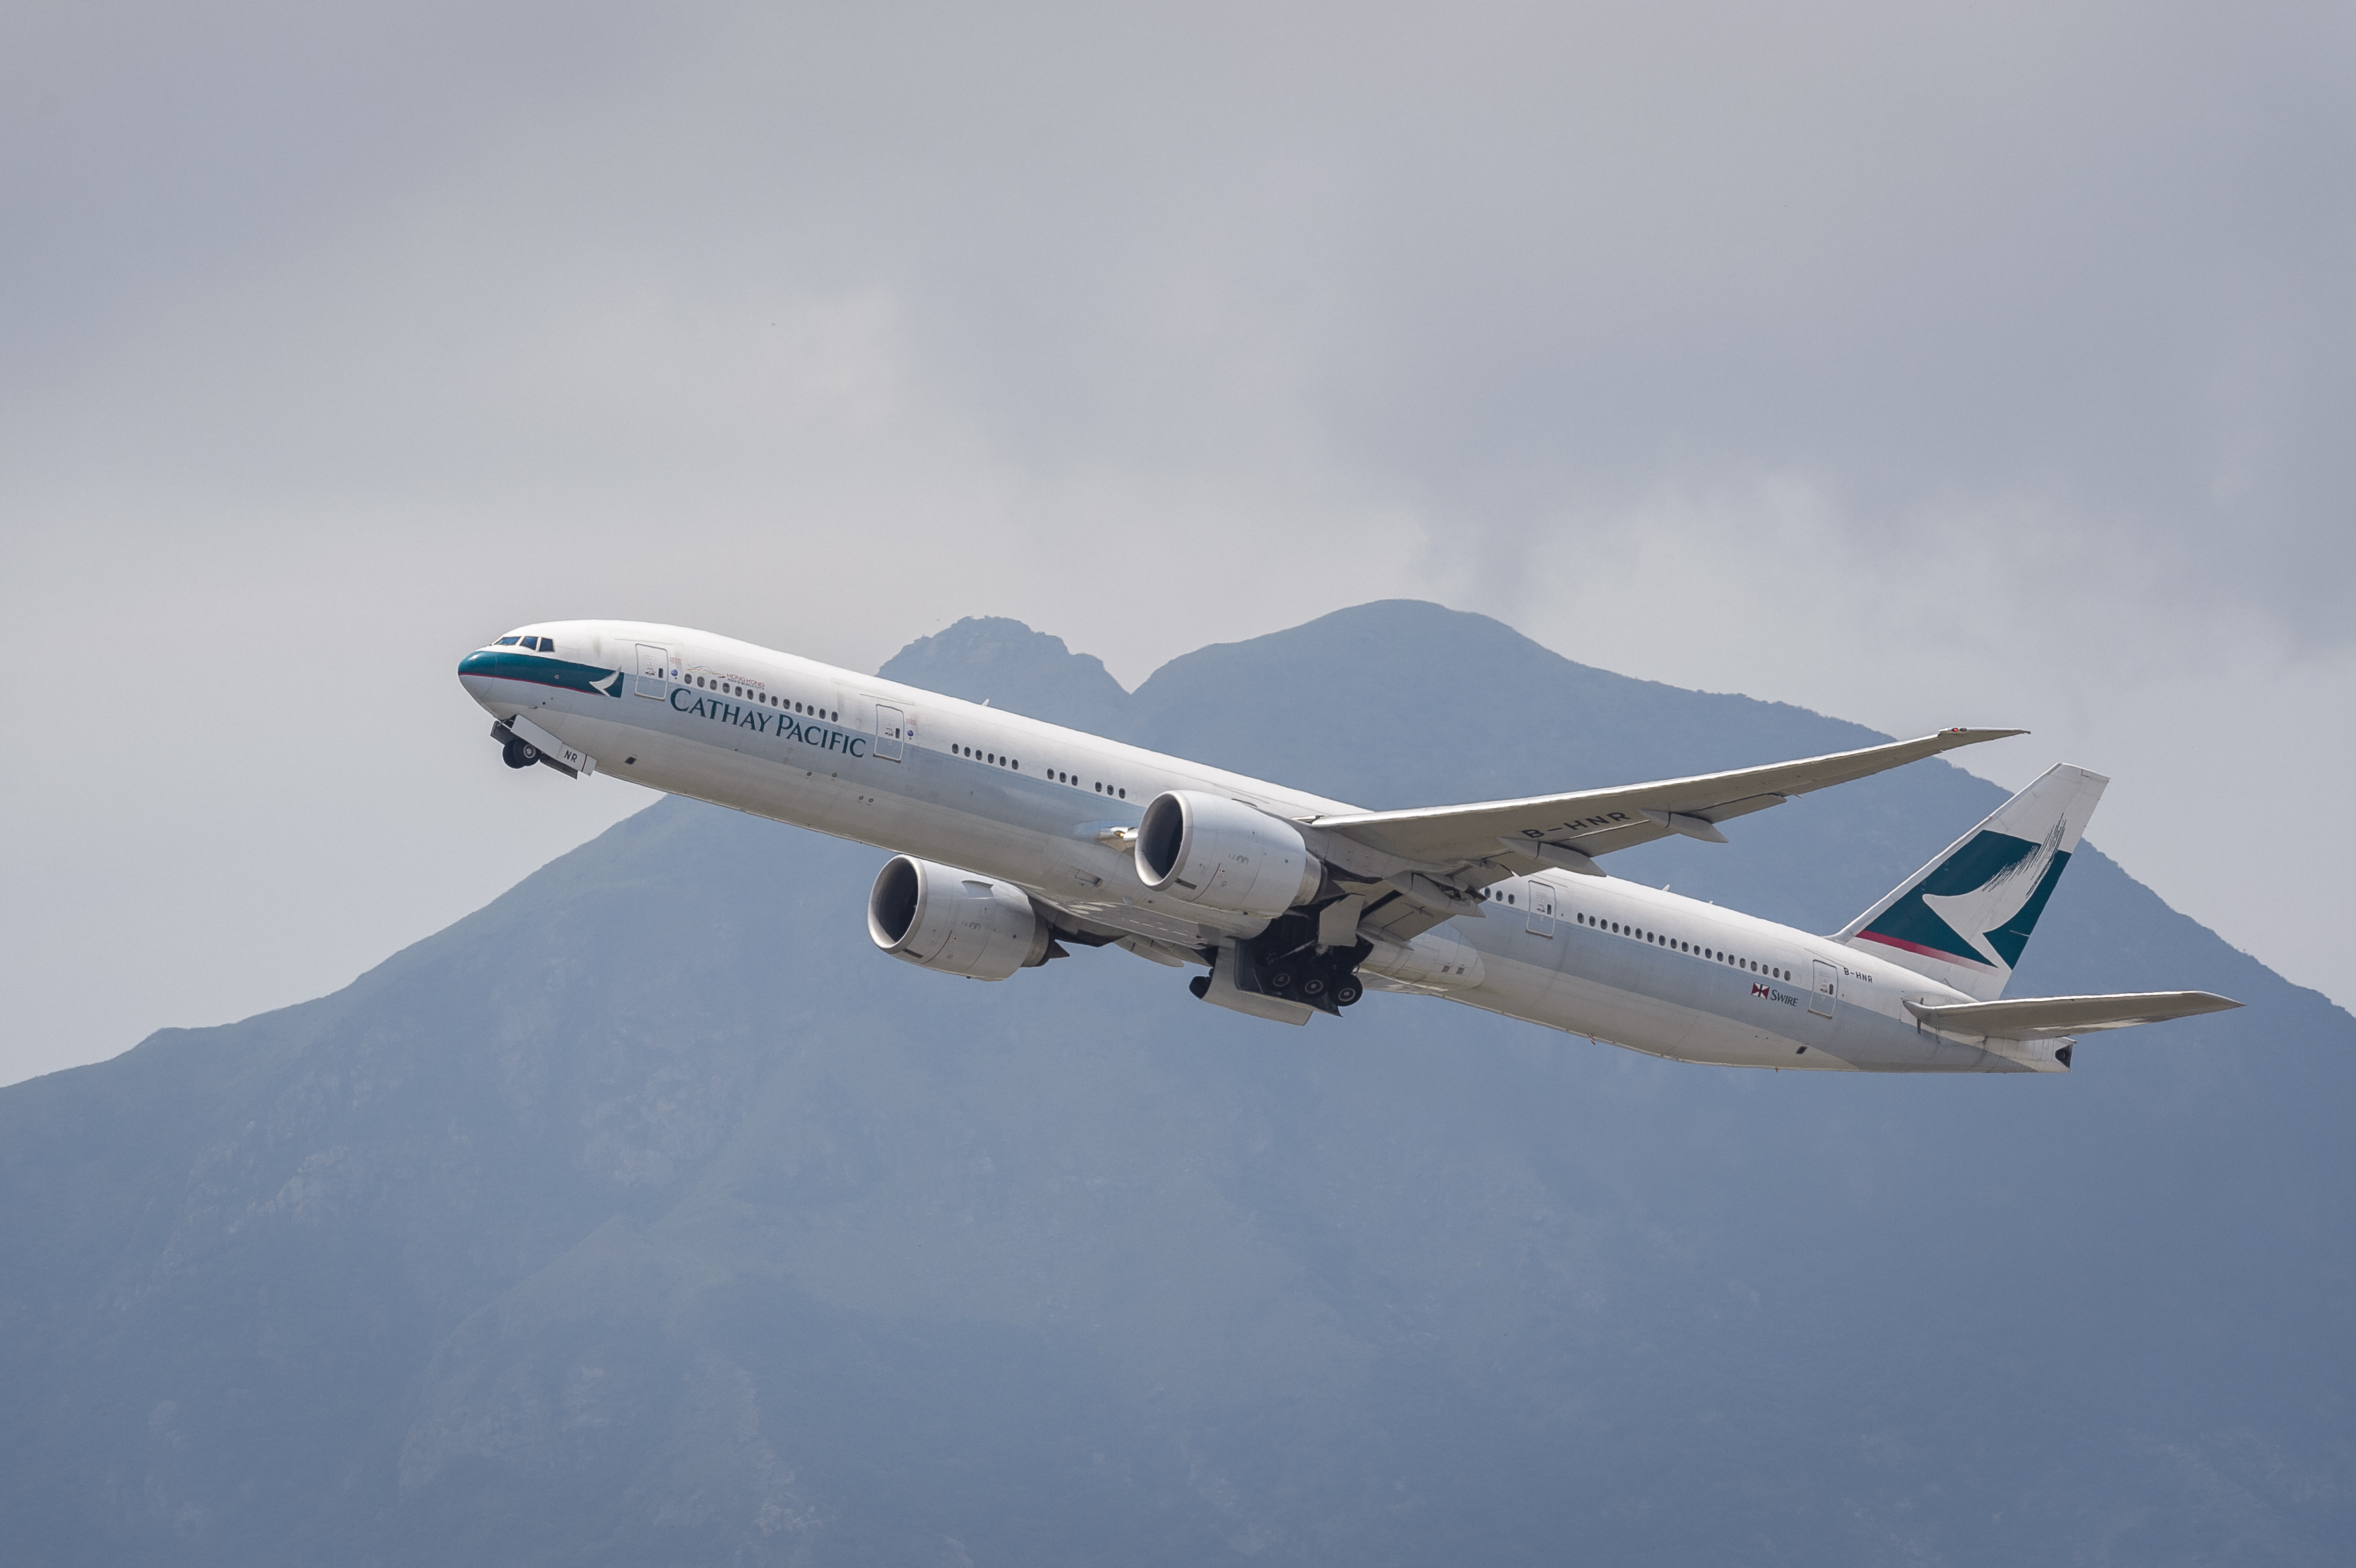 A Boeing 777-367(ER) passenger plane belonging to Cathay Pacific takes off from the Hong Kong International Airport in Hong Kong on Aug. 08 2018.